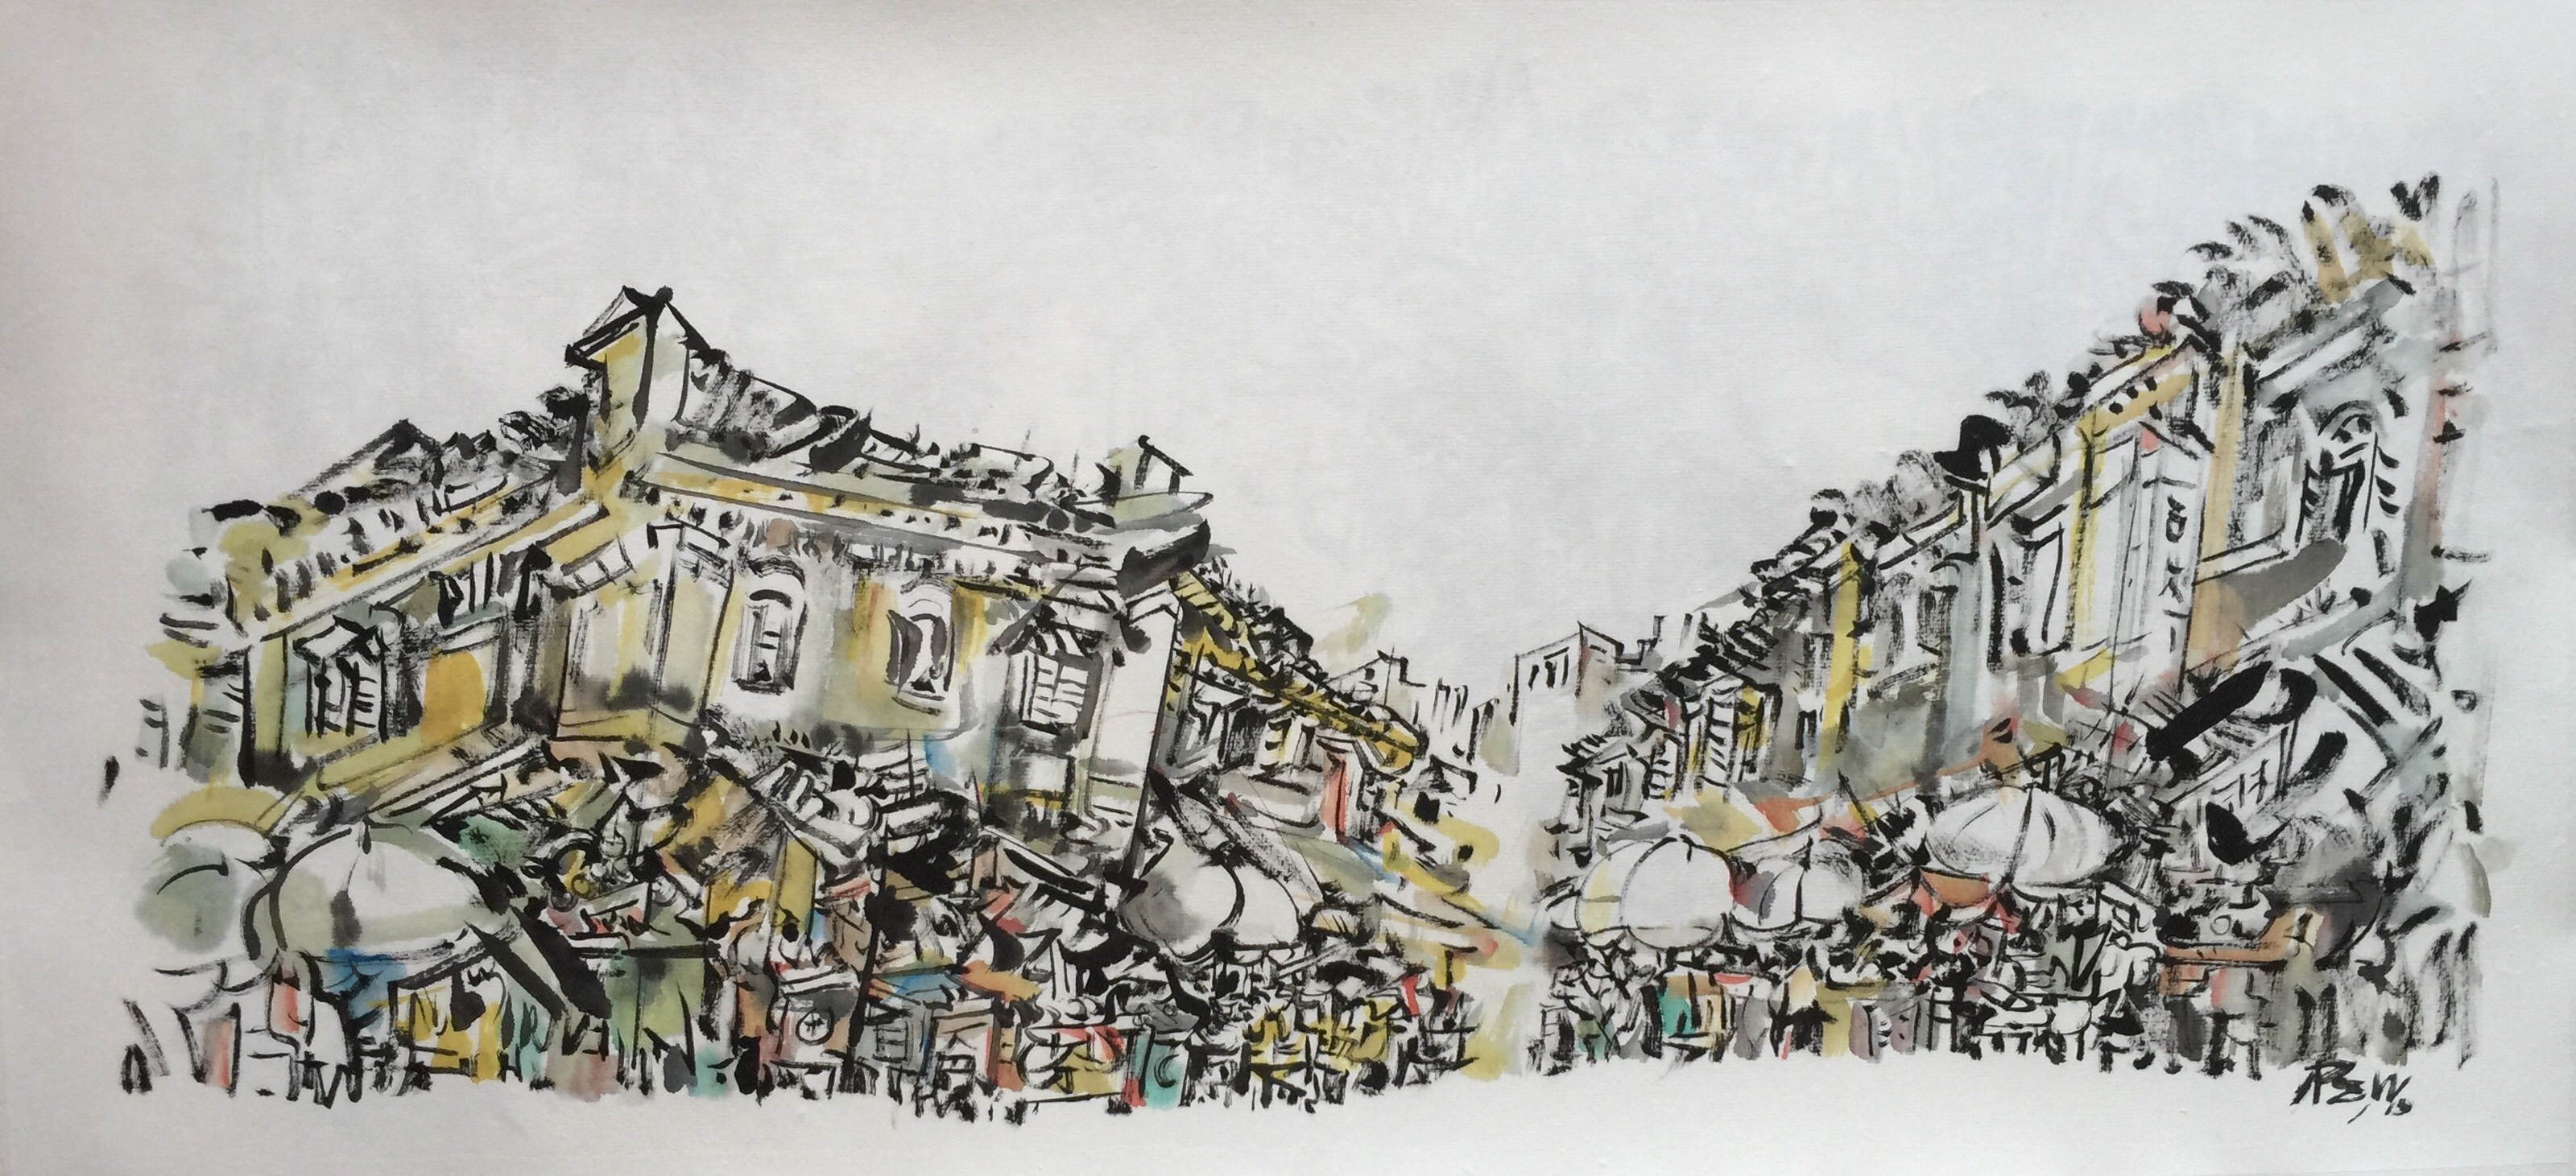 Poh Siew Wah, Telok Ayer Series, Ink On Rice Paper, 81.5 X 40.5cm, $1,950